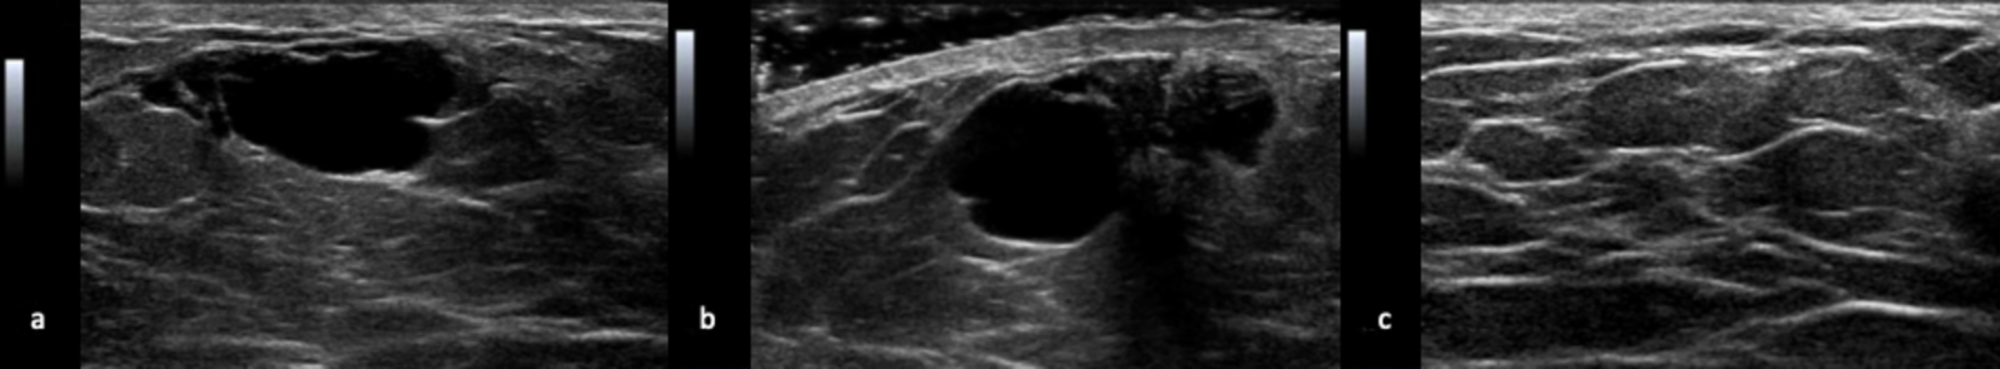 Cureus Benign Breast Cyst In A Young Male